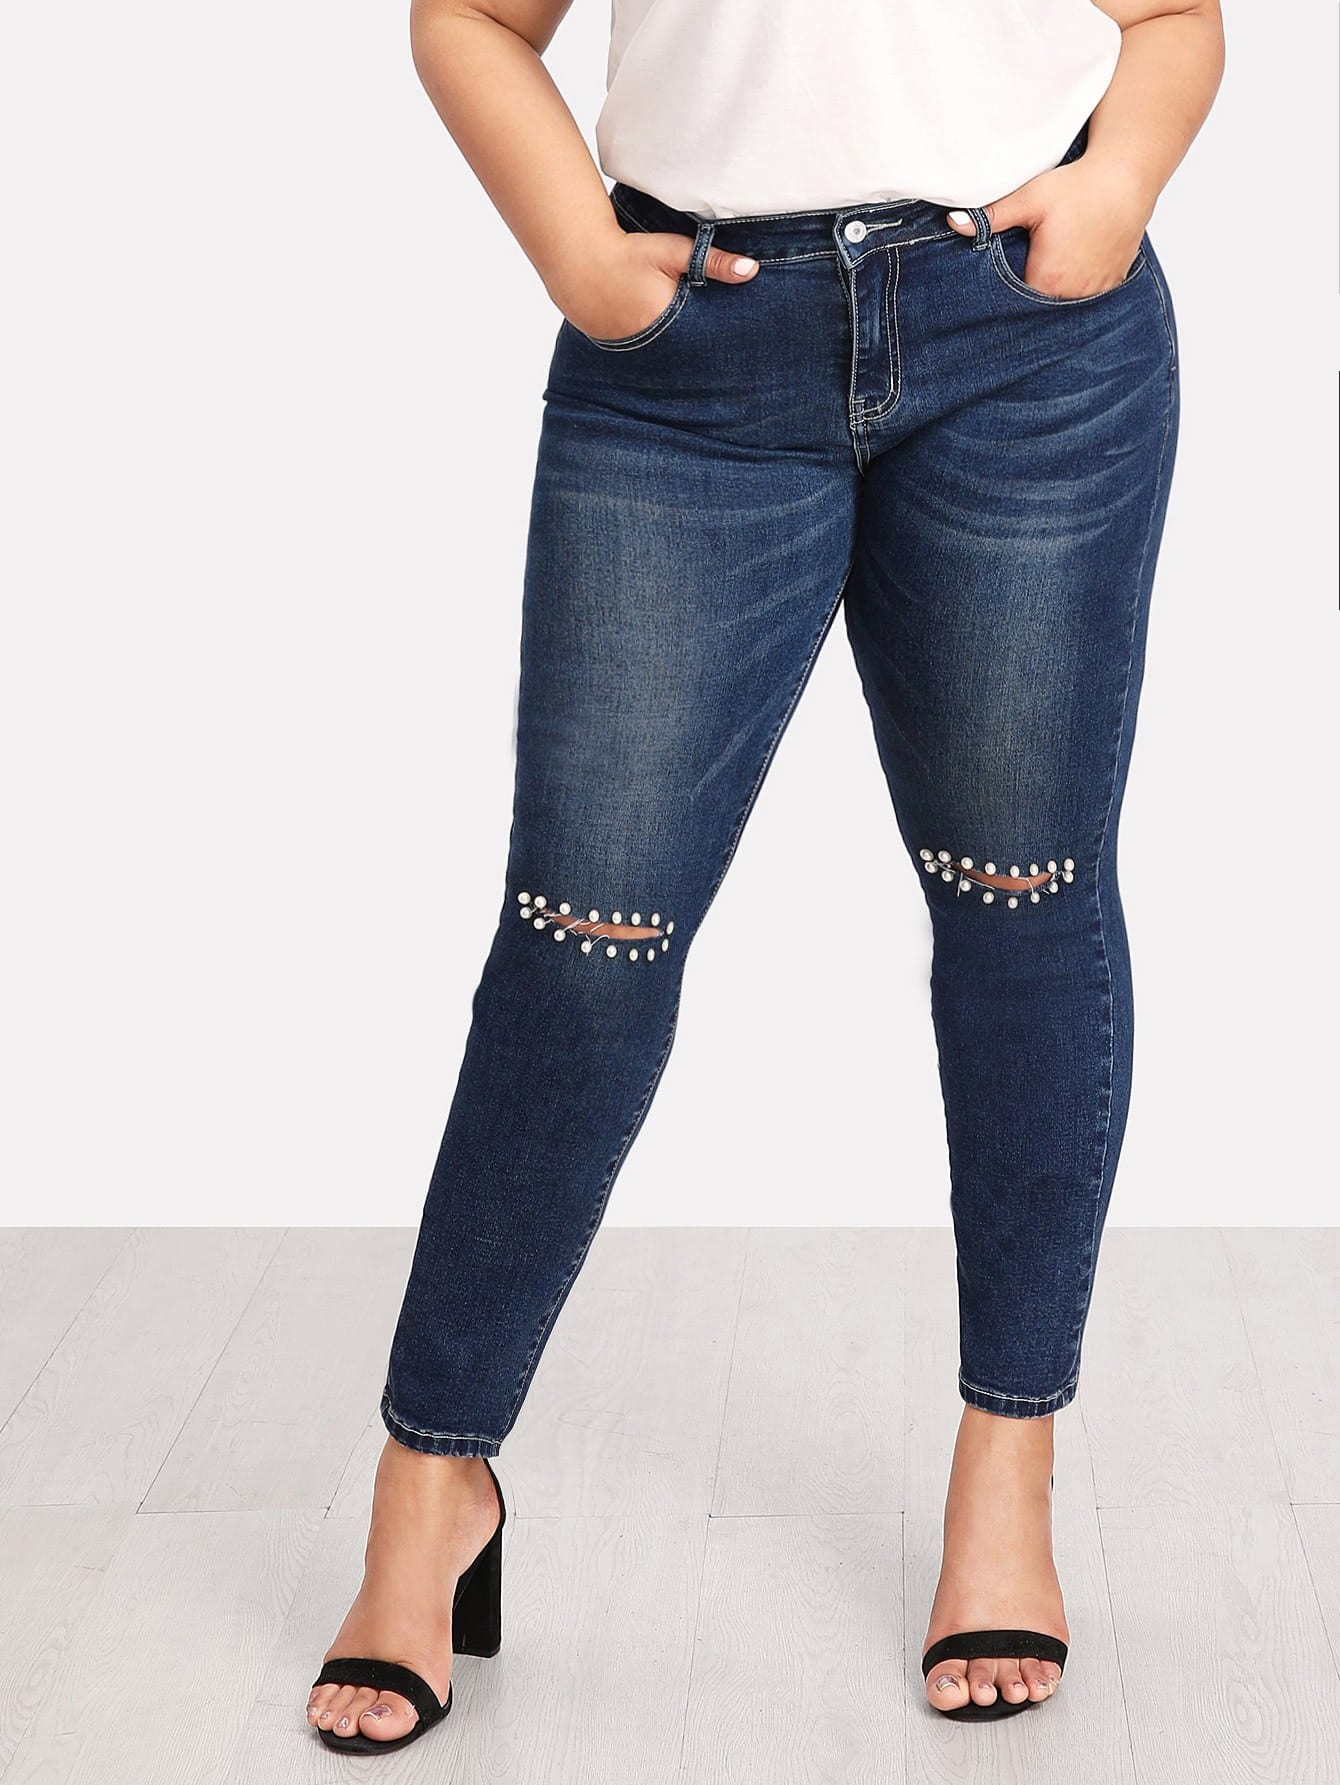 Knee Rips Faux Pearl Detail Jeans